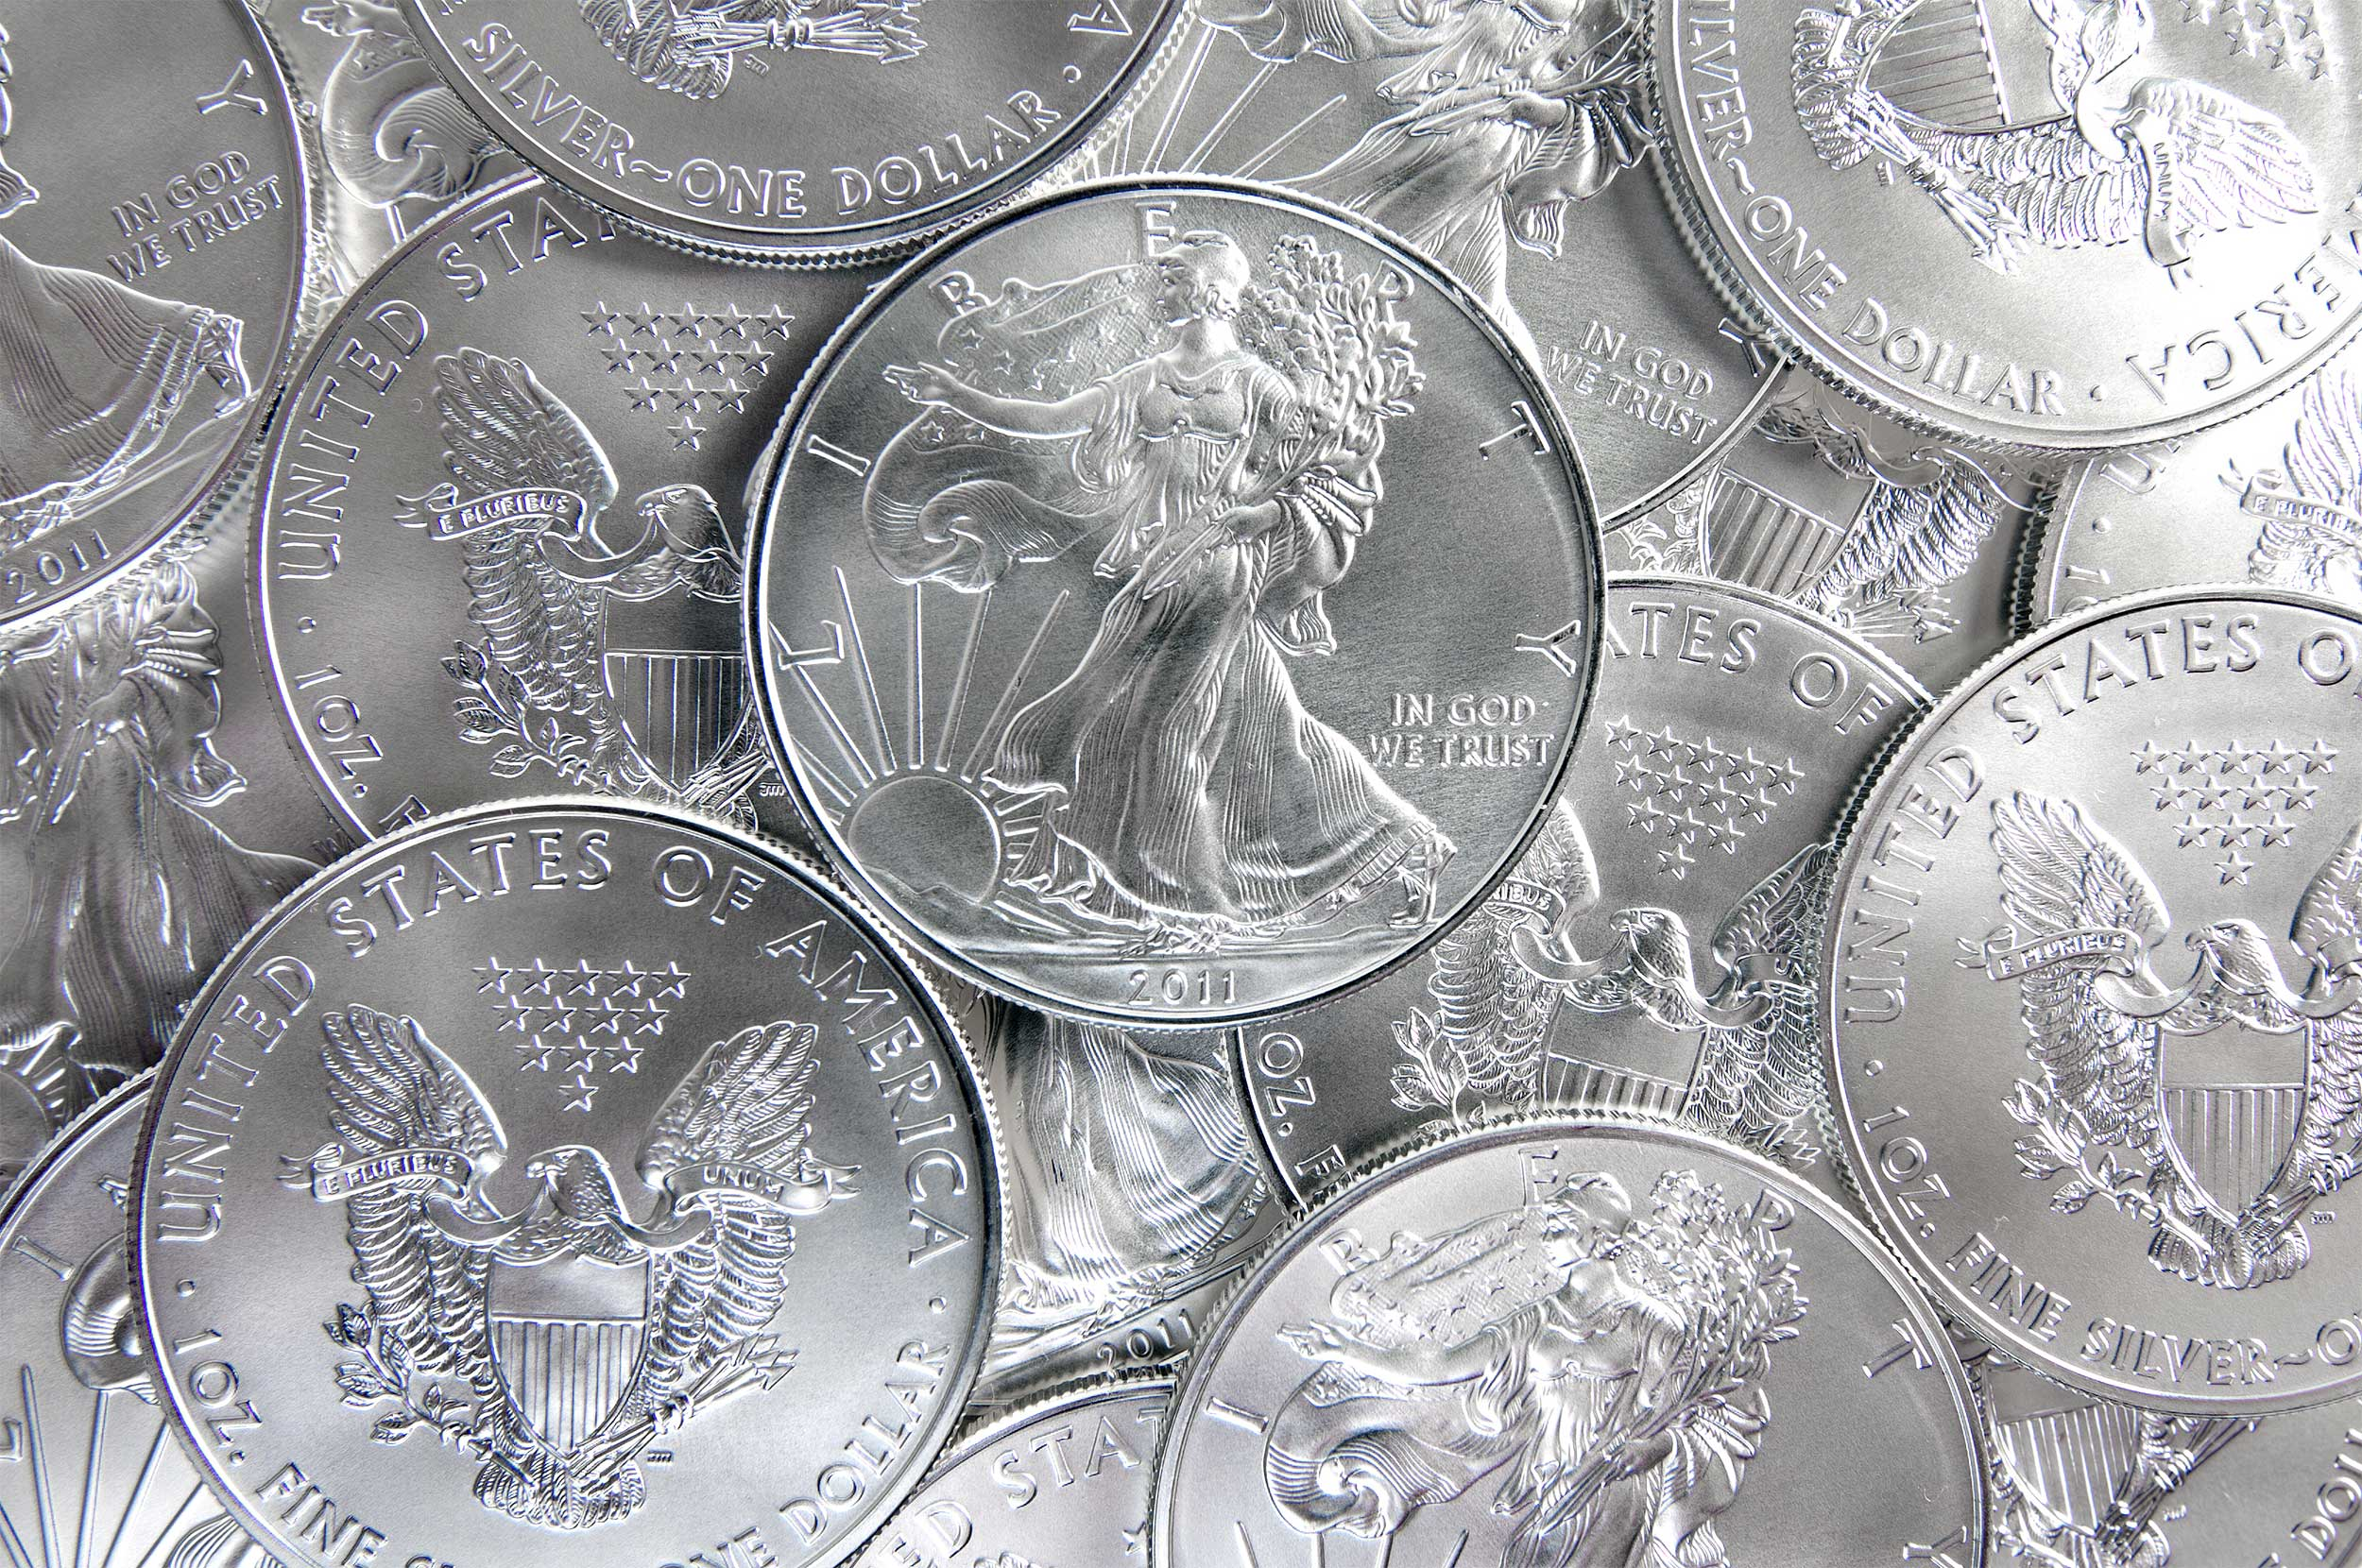 Ted Butler: Coming Silver Breakout Will be Violent